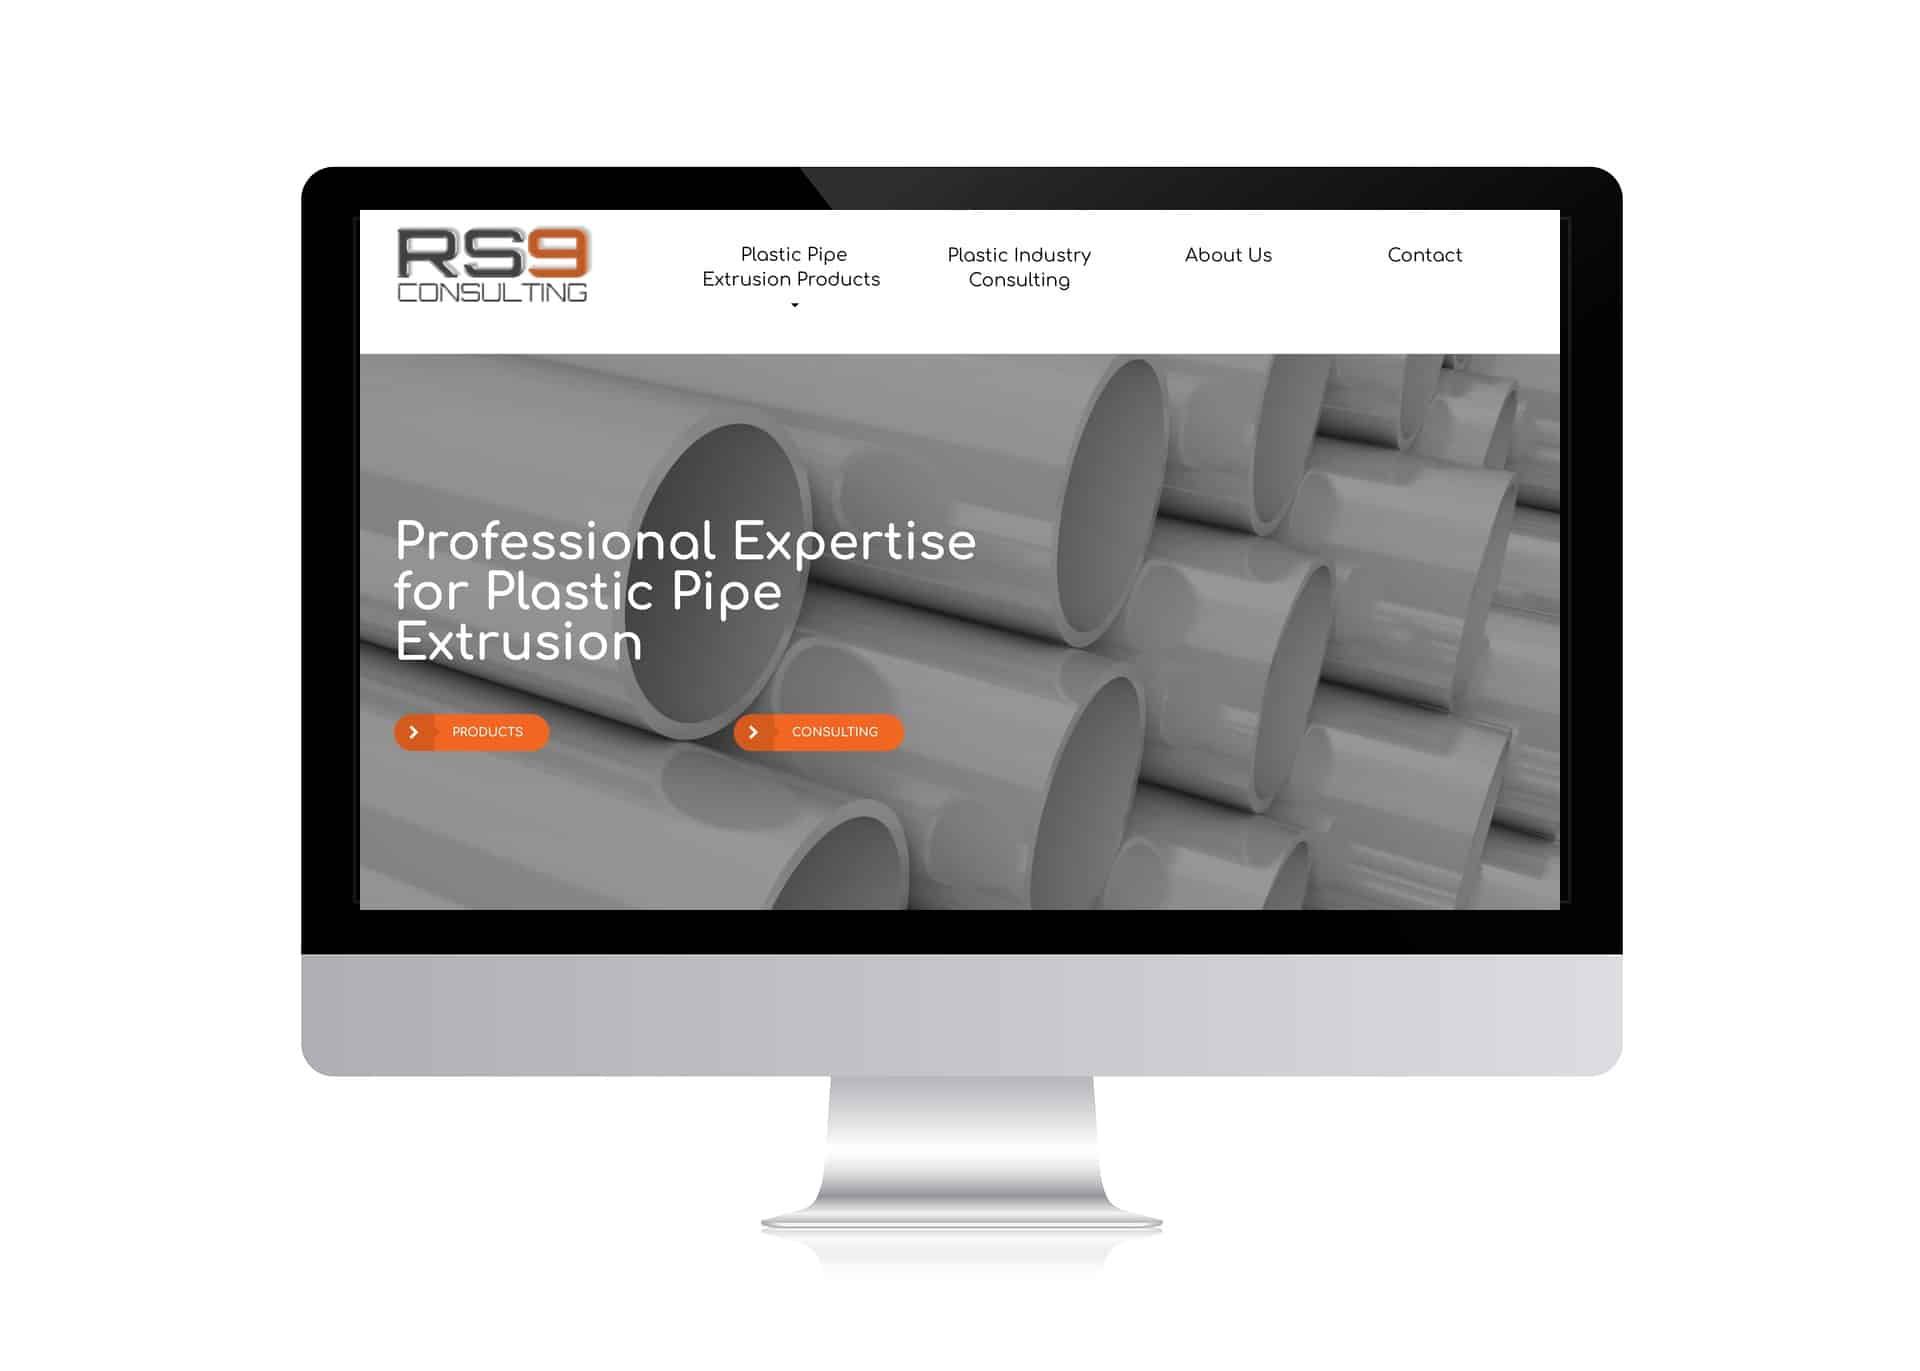 Portfolio RS9 Consulting Plastic Pipe Extrusion Expertise